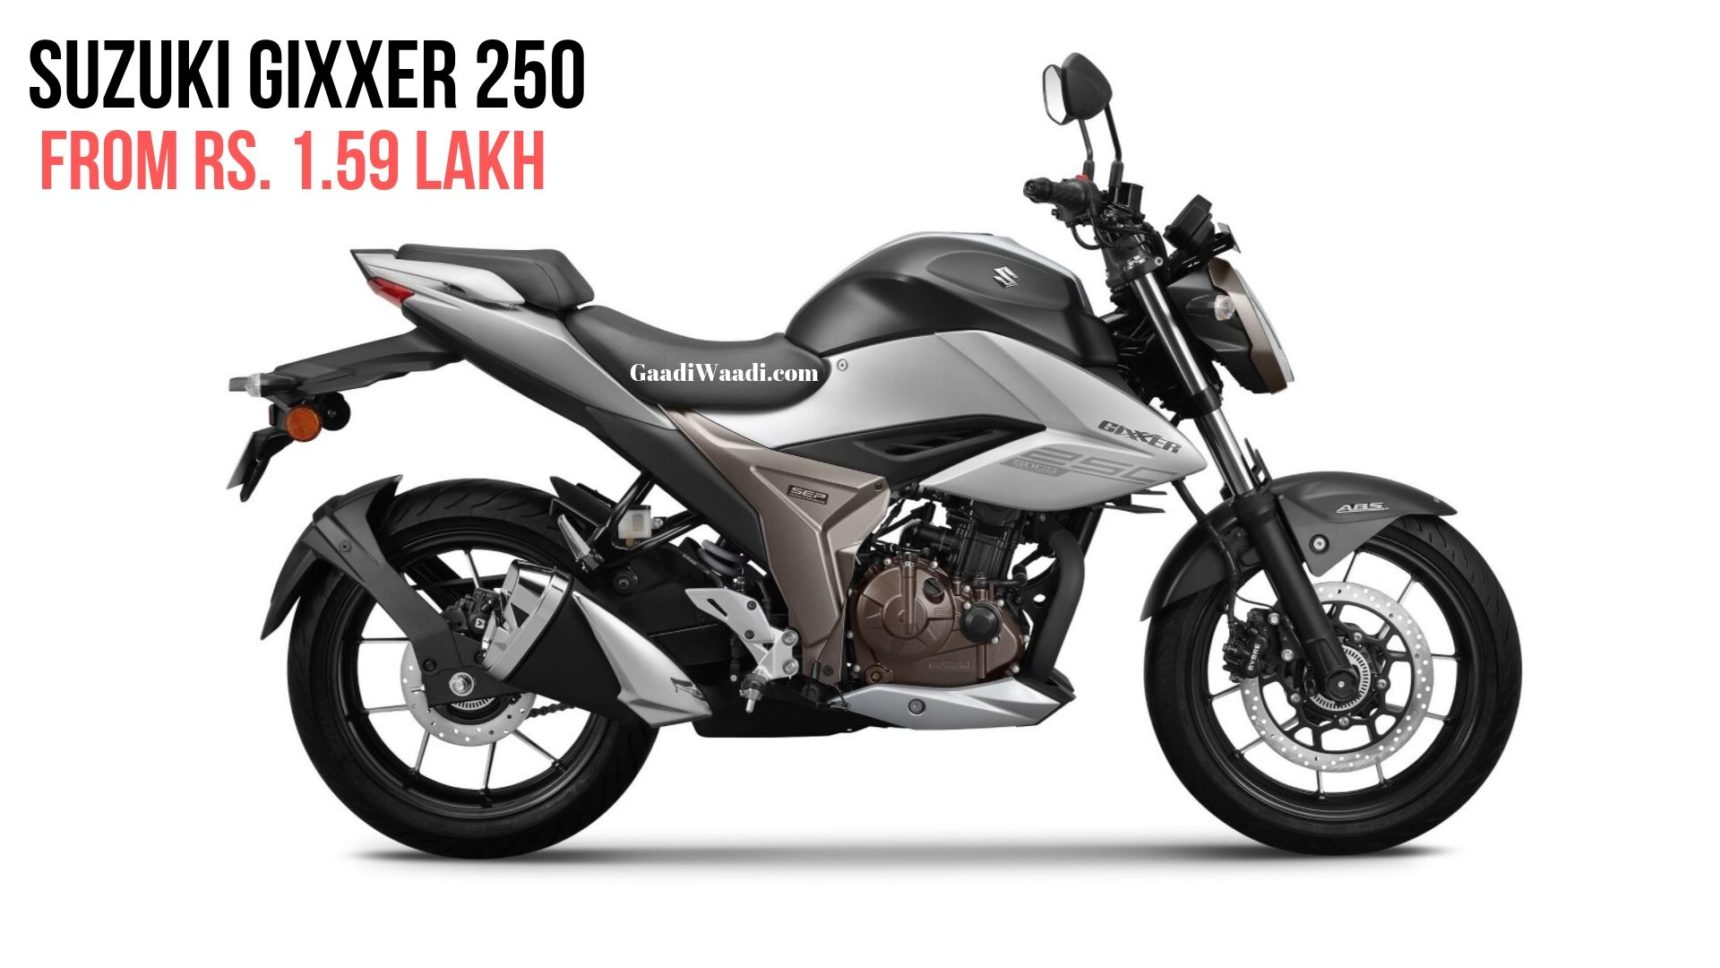 New (2019) Suzuki Gixxer 250 Launched In India At Rs 1.59